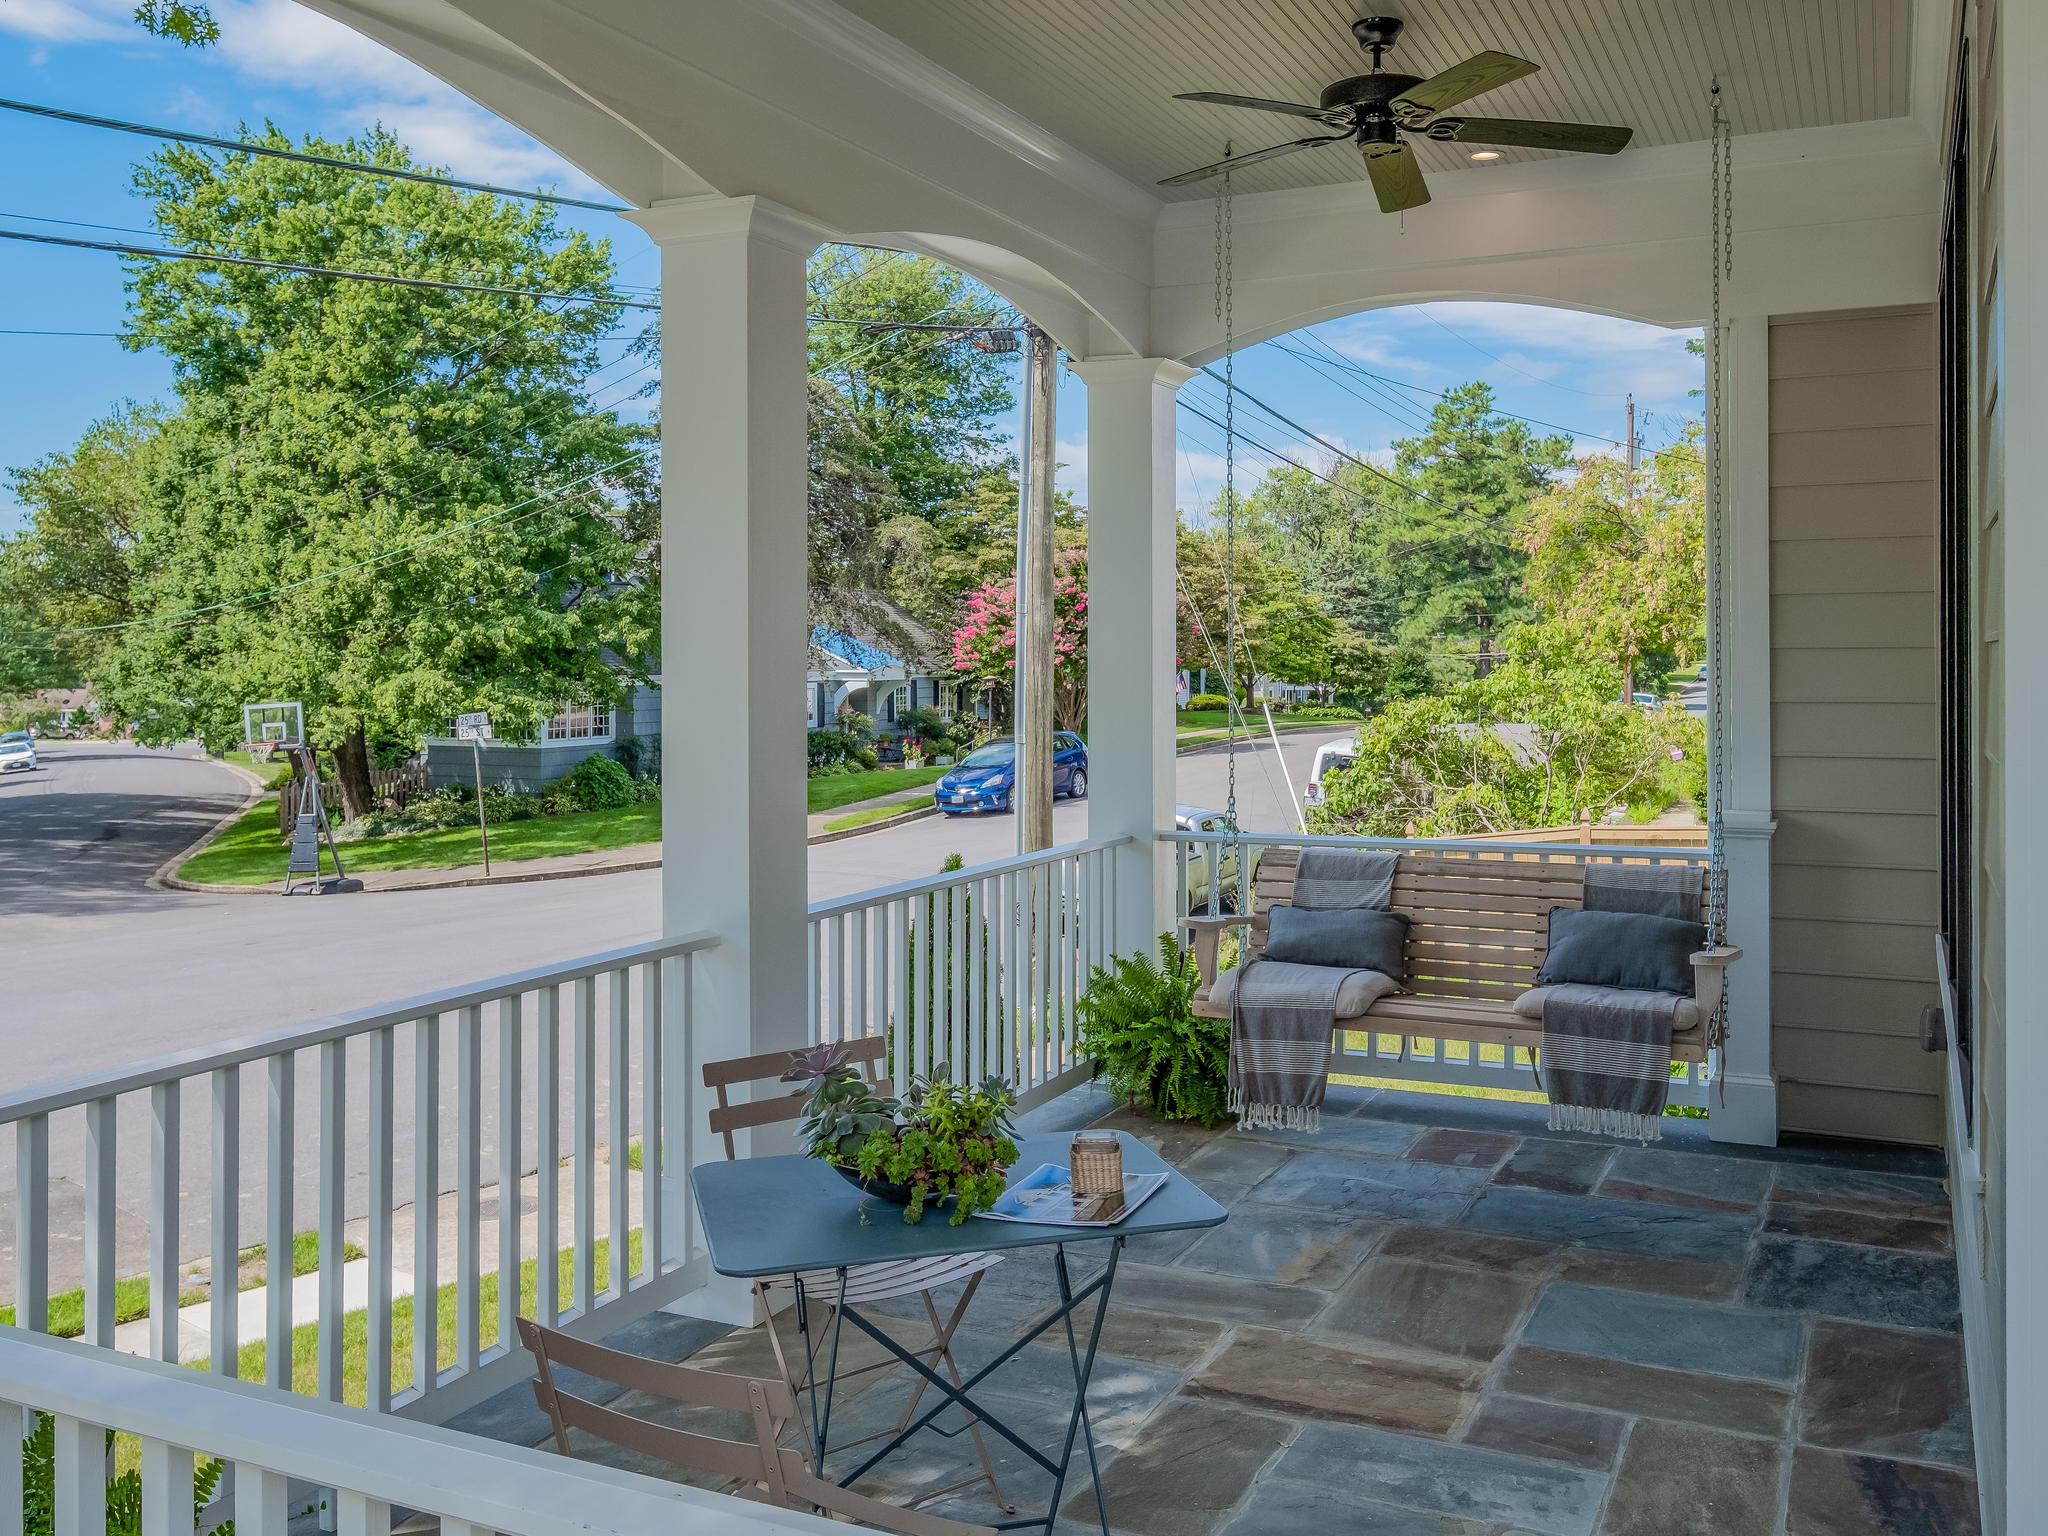 Pennsylvania stone patio with arched trim and beadboard ceiling. Custom Home by Custom Builder, North Arlington, VA 22207